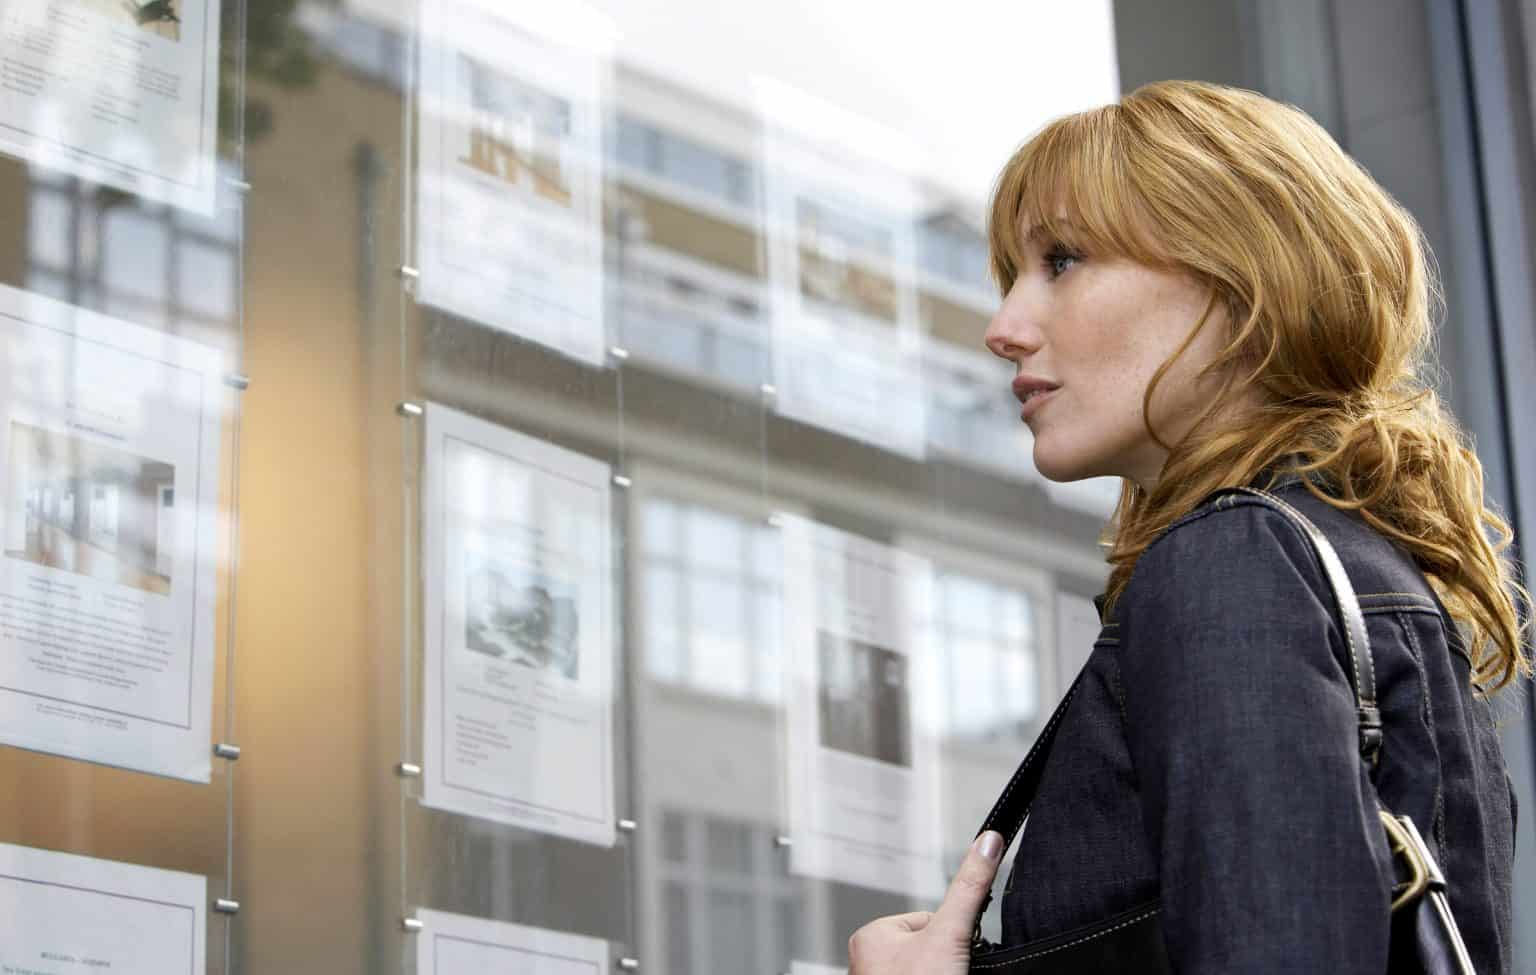 woman looking at real estate window trying to find a rental property